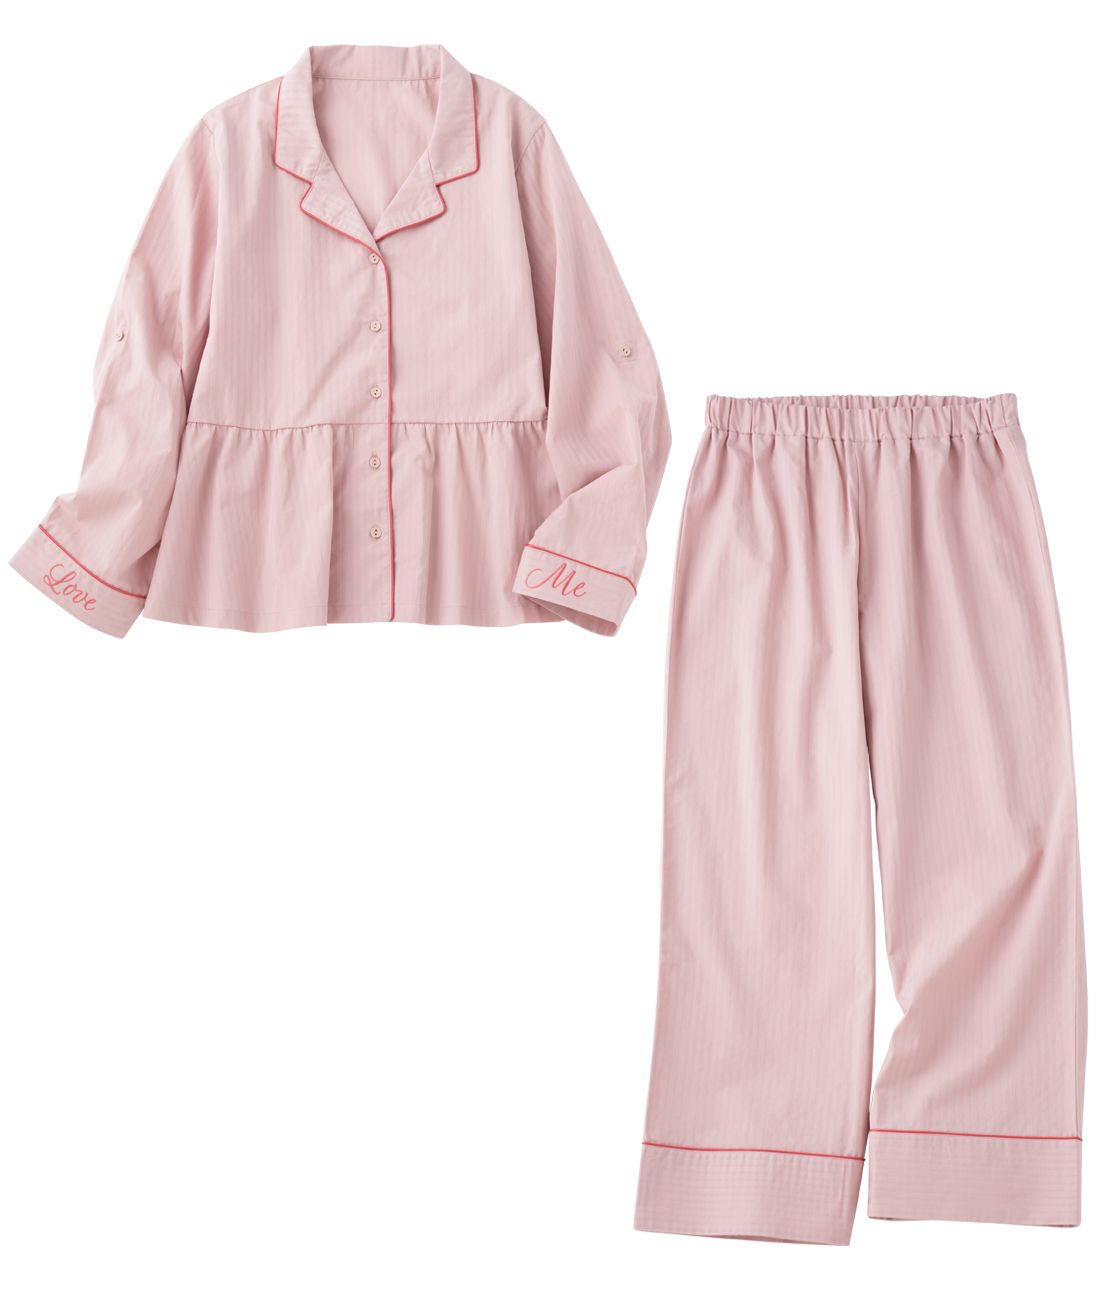 Stripe cotton satin shirt pajamas